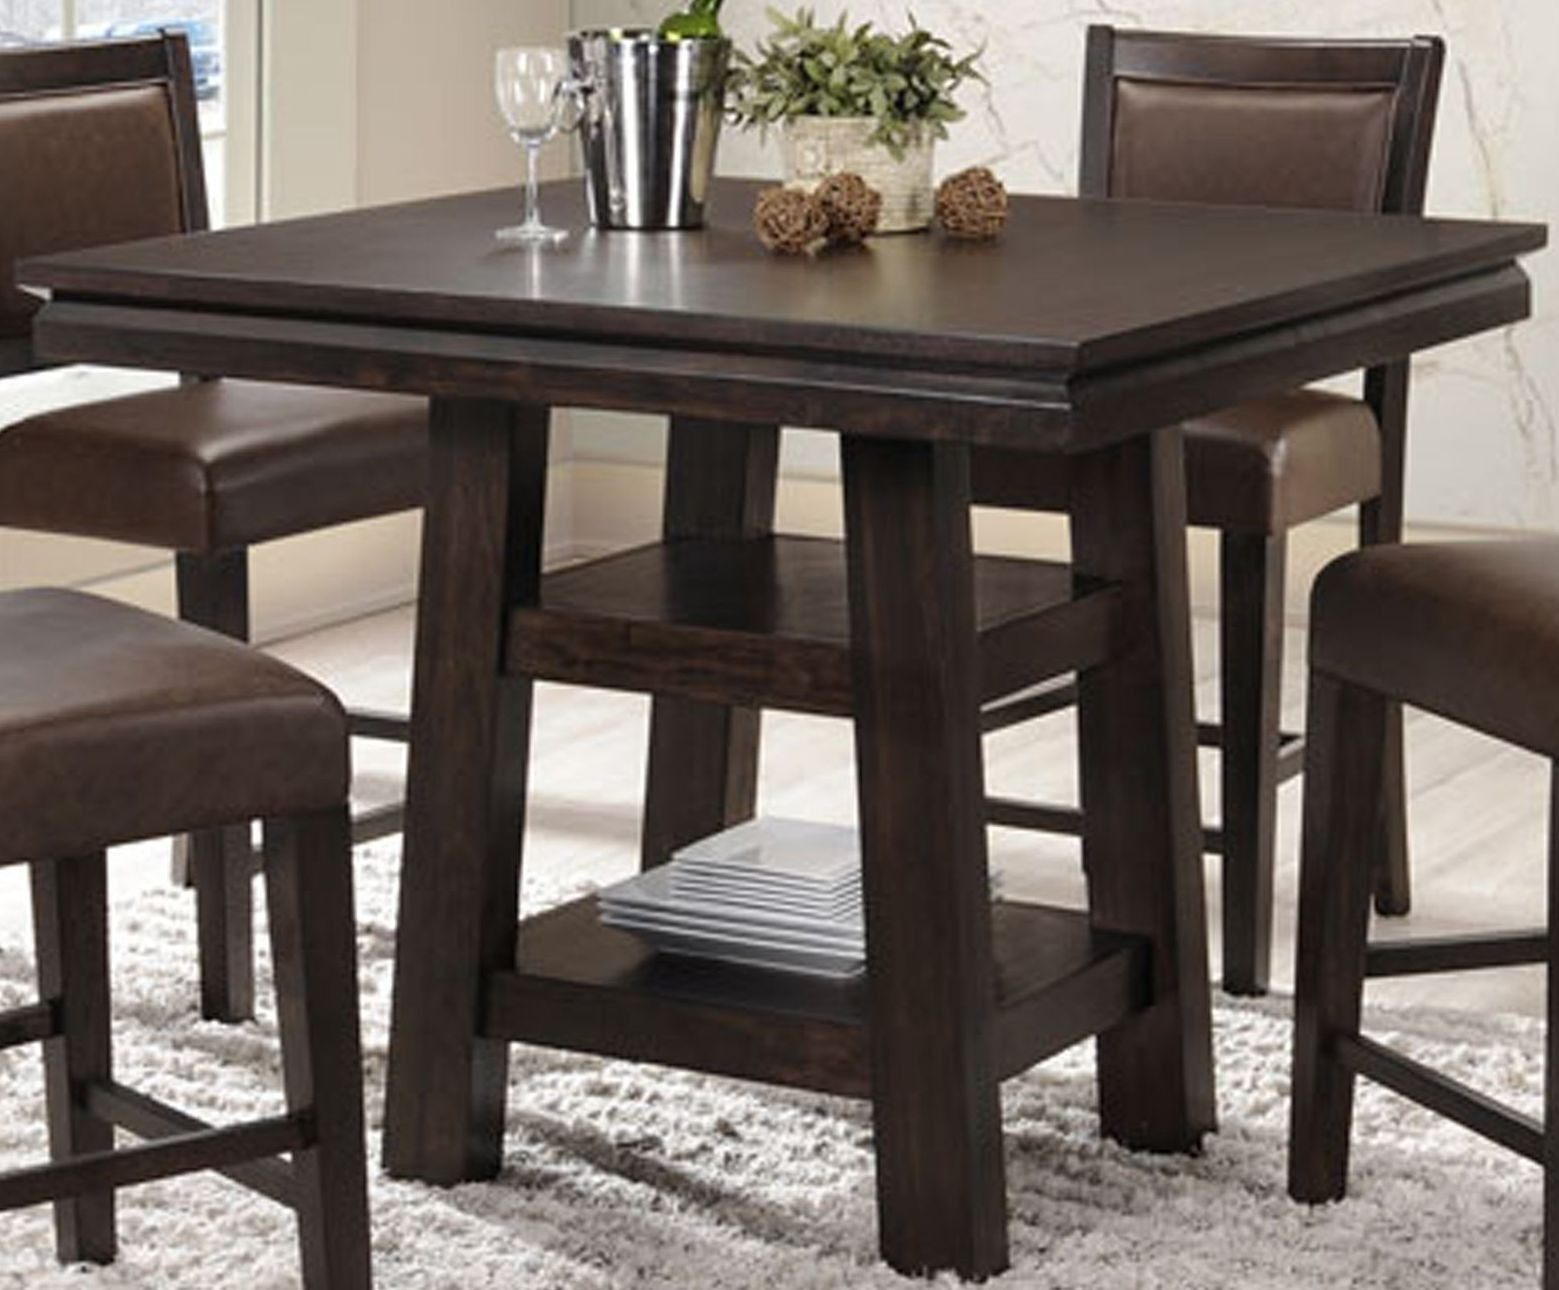 Montego Bay Black Oak Counter Height Dining Table 2280 50 PT PB ECI Furniture